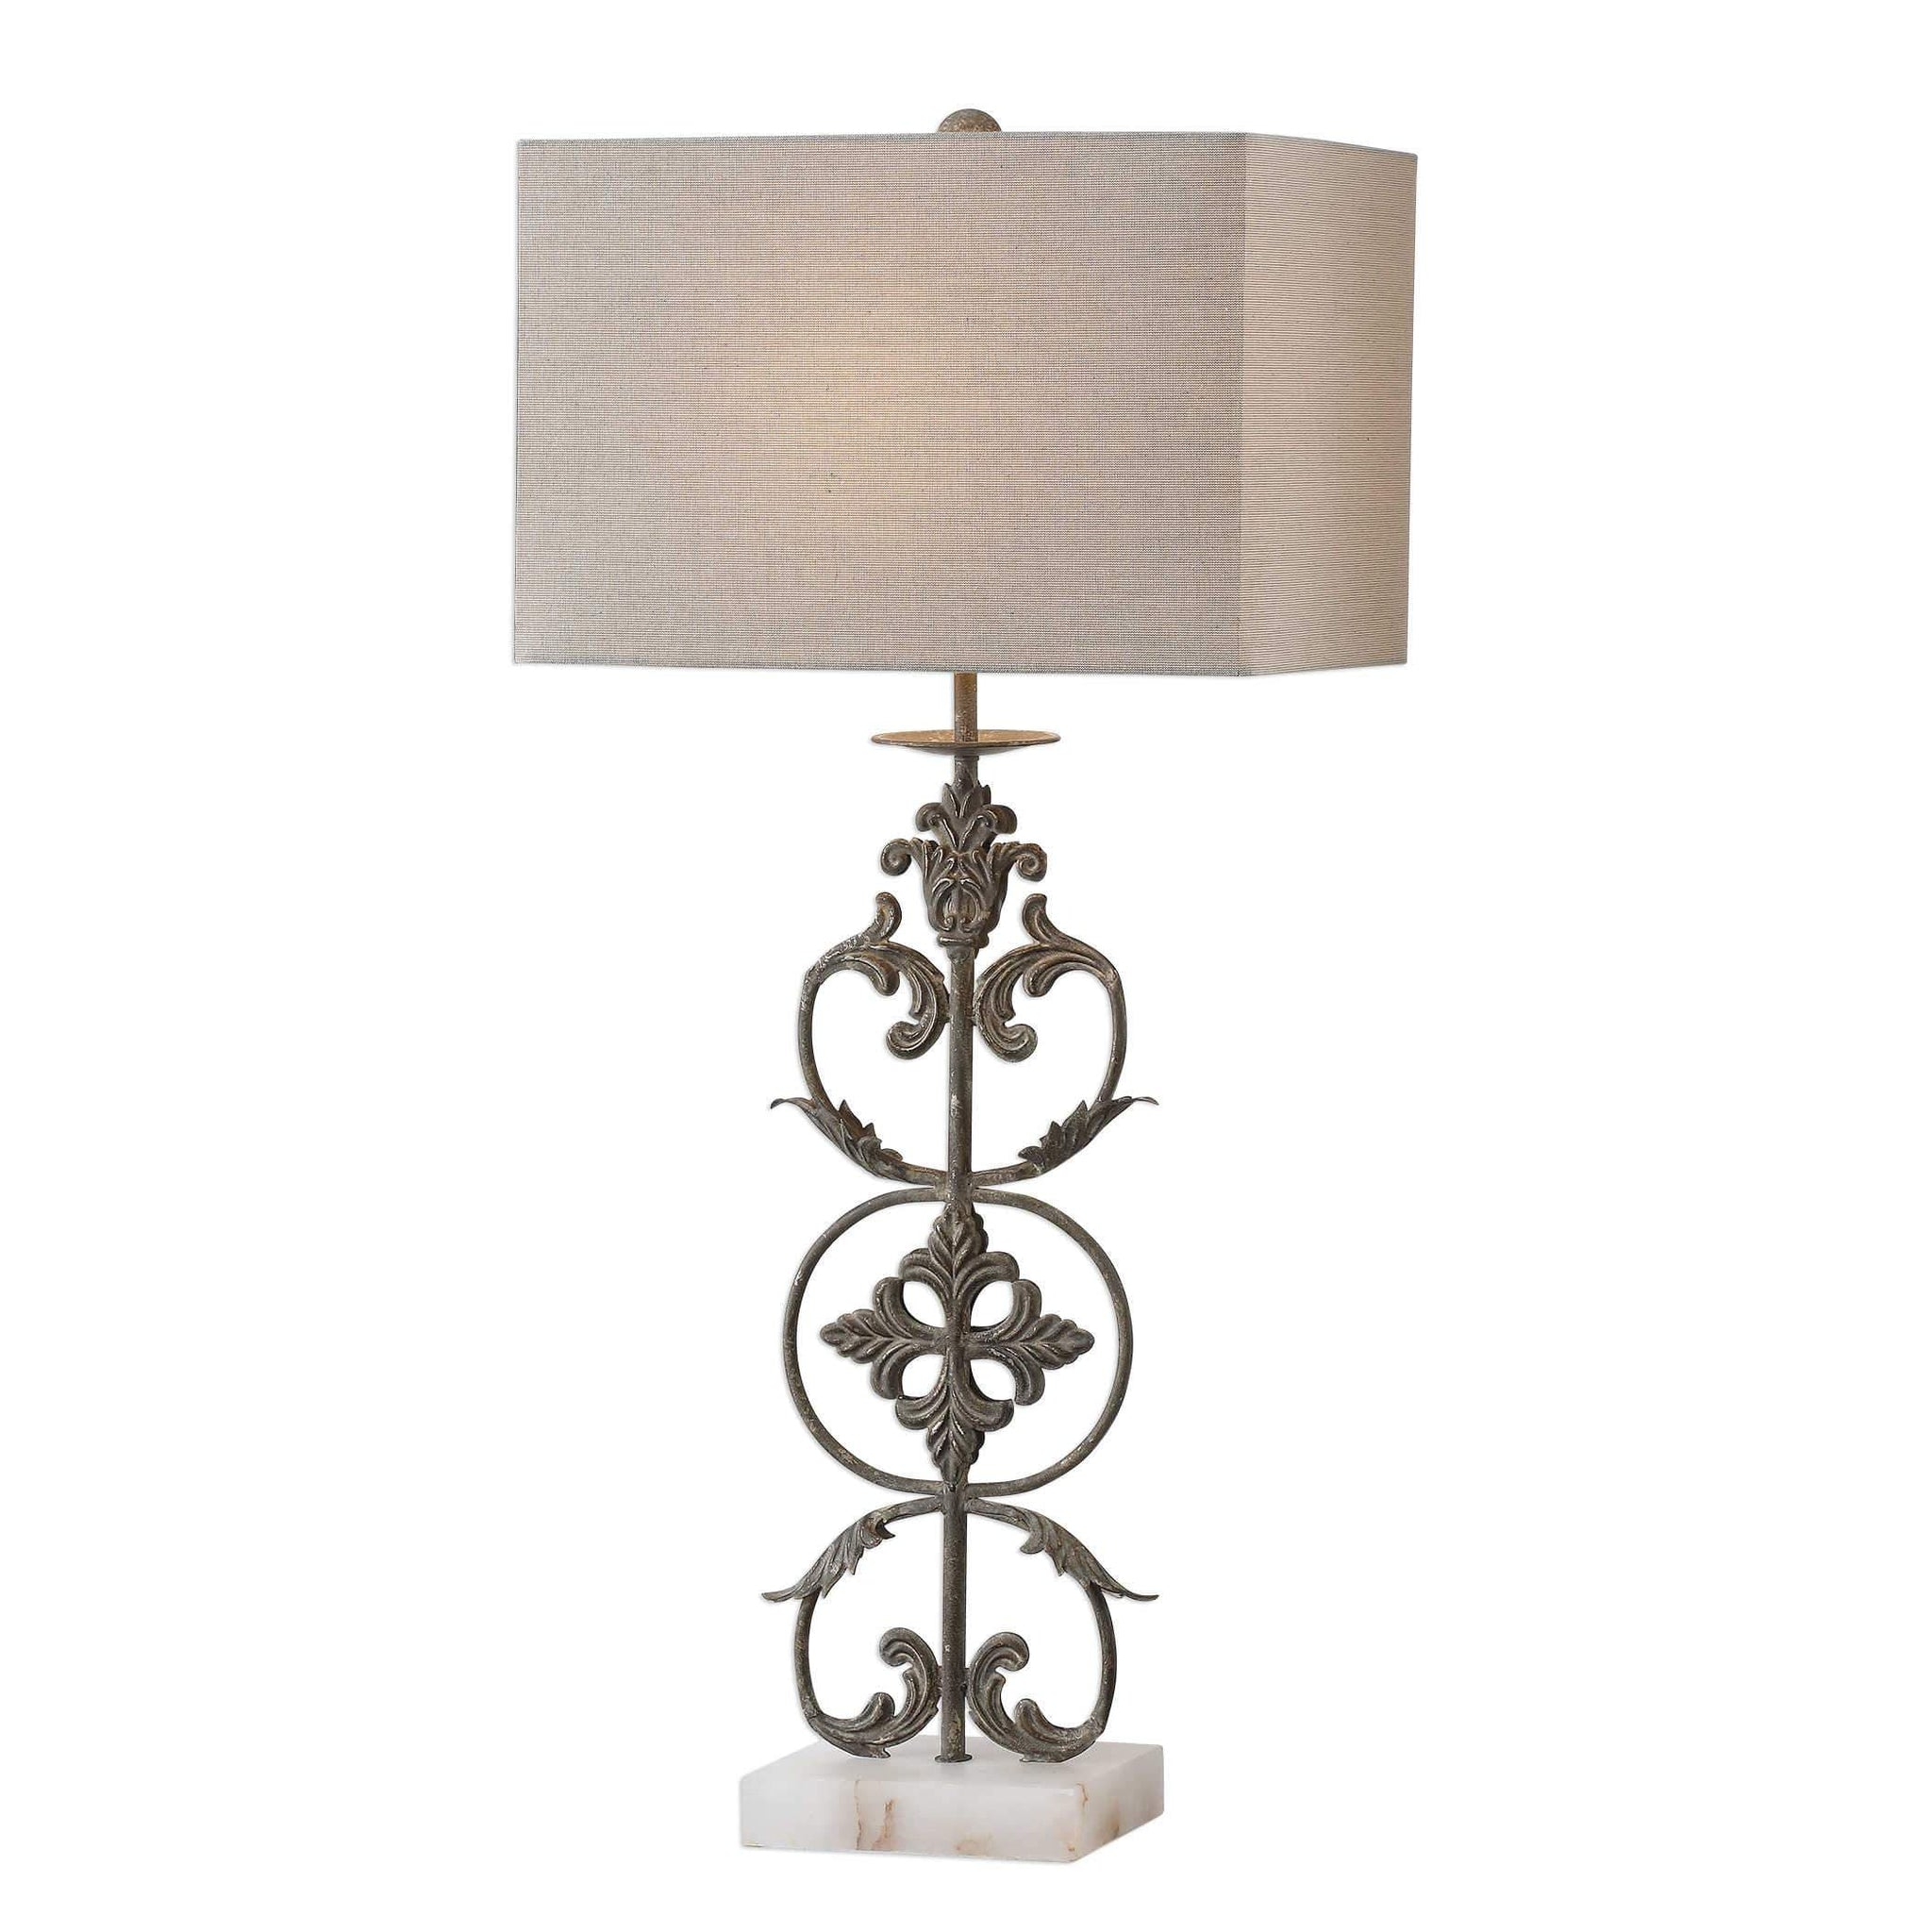 The Gendane Table Lamp